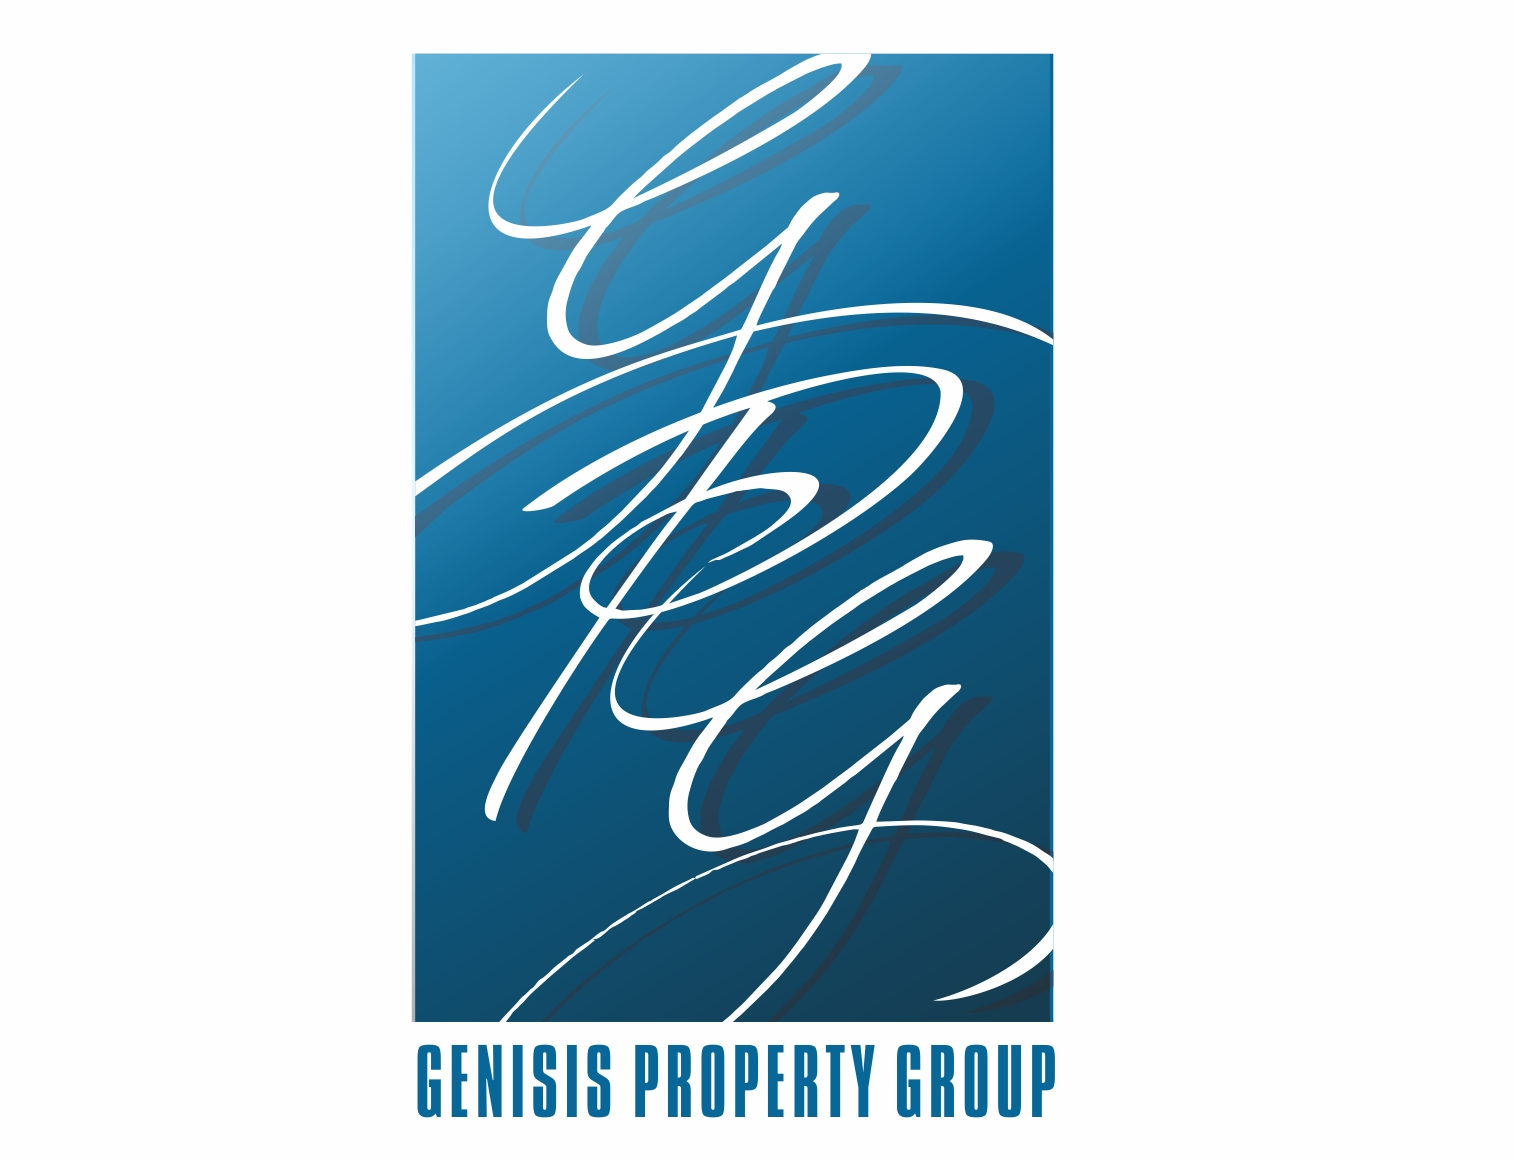 genisis property group 1.jpg